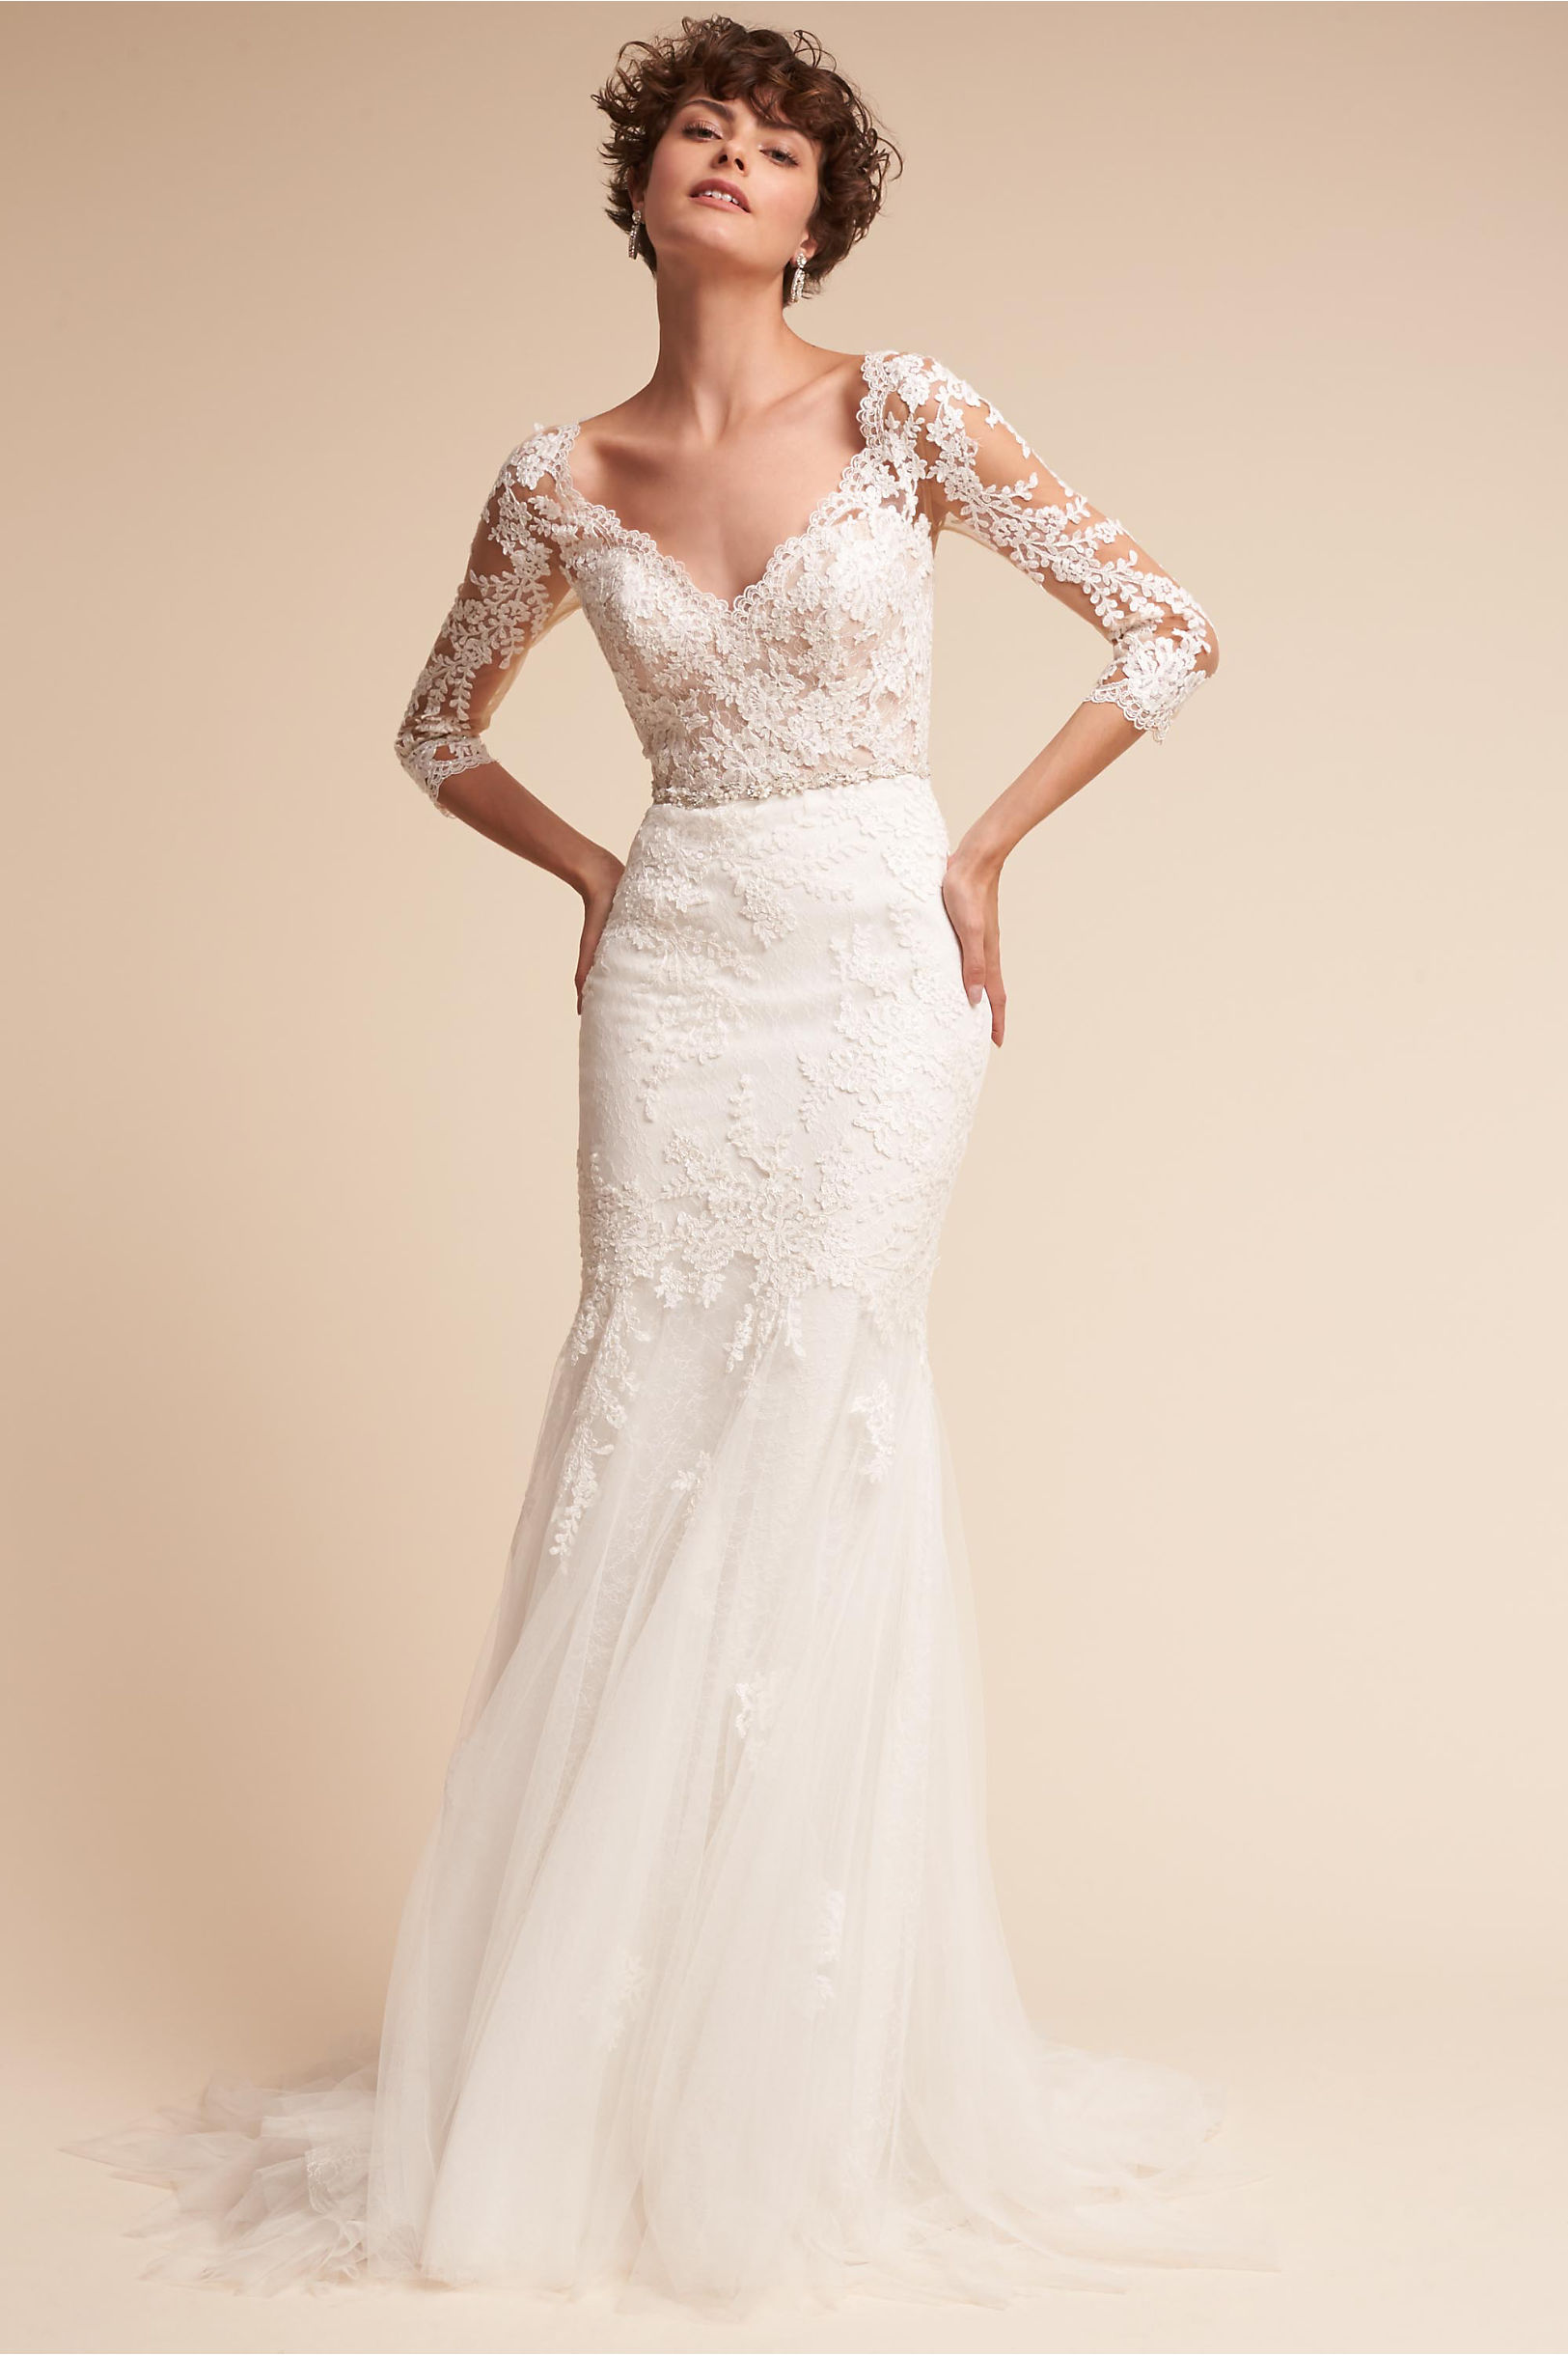 60s-inspired wedding dresses for the bride who loves a vintage ...